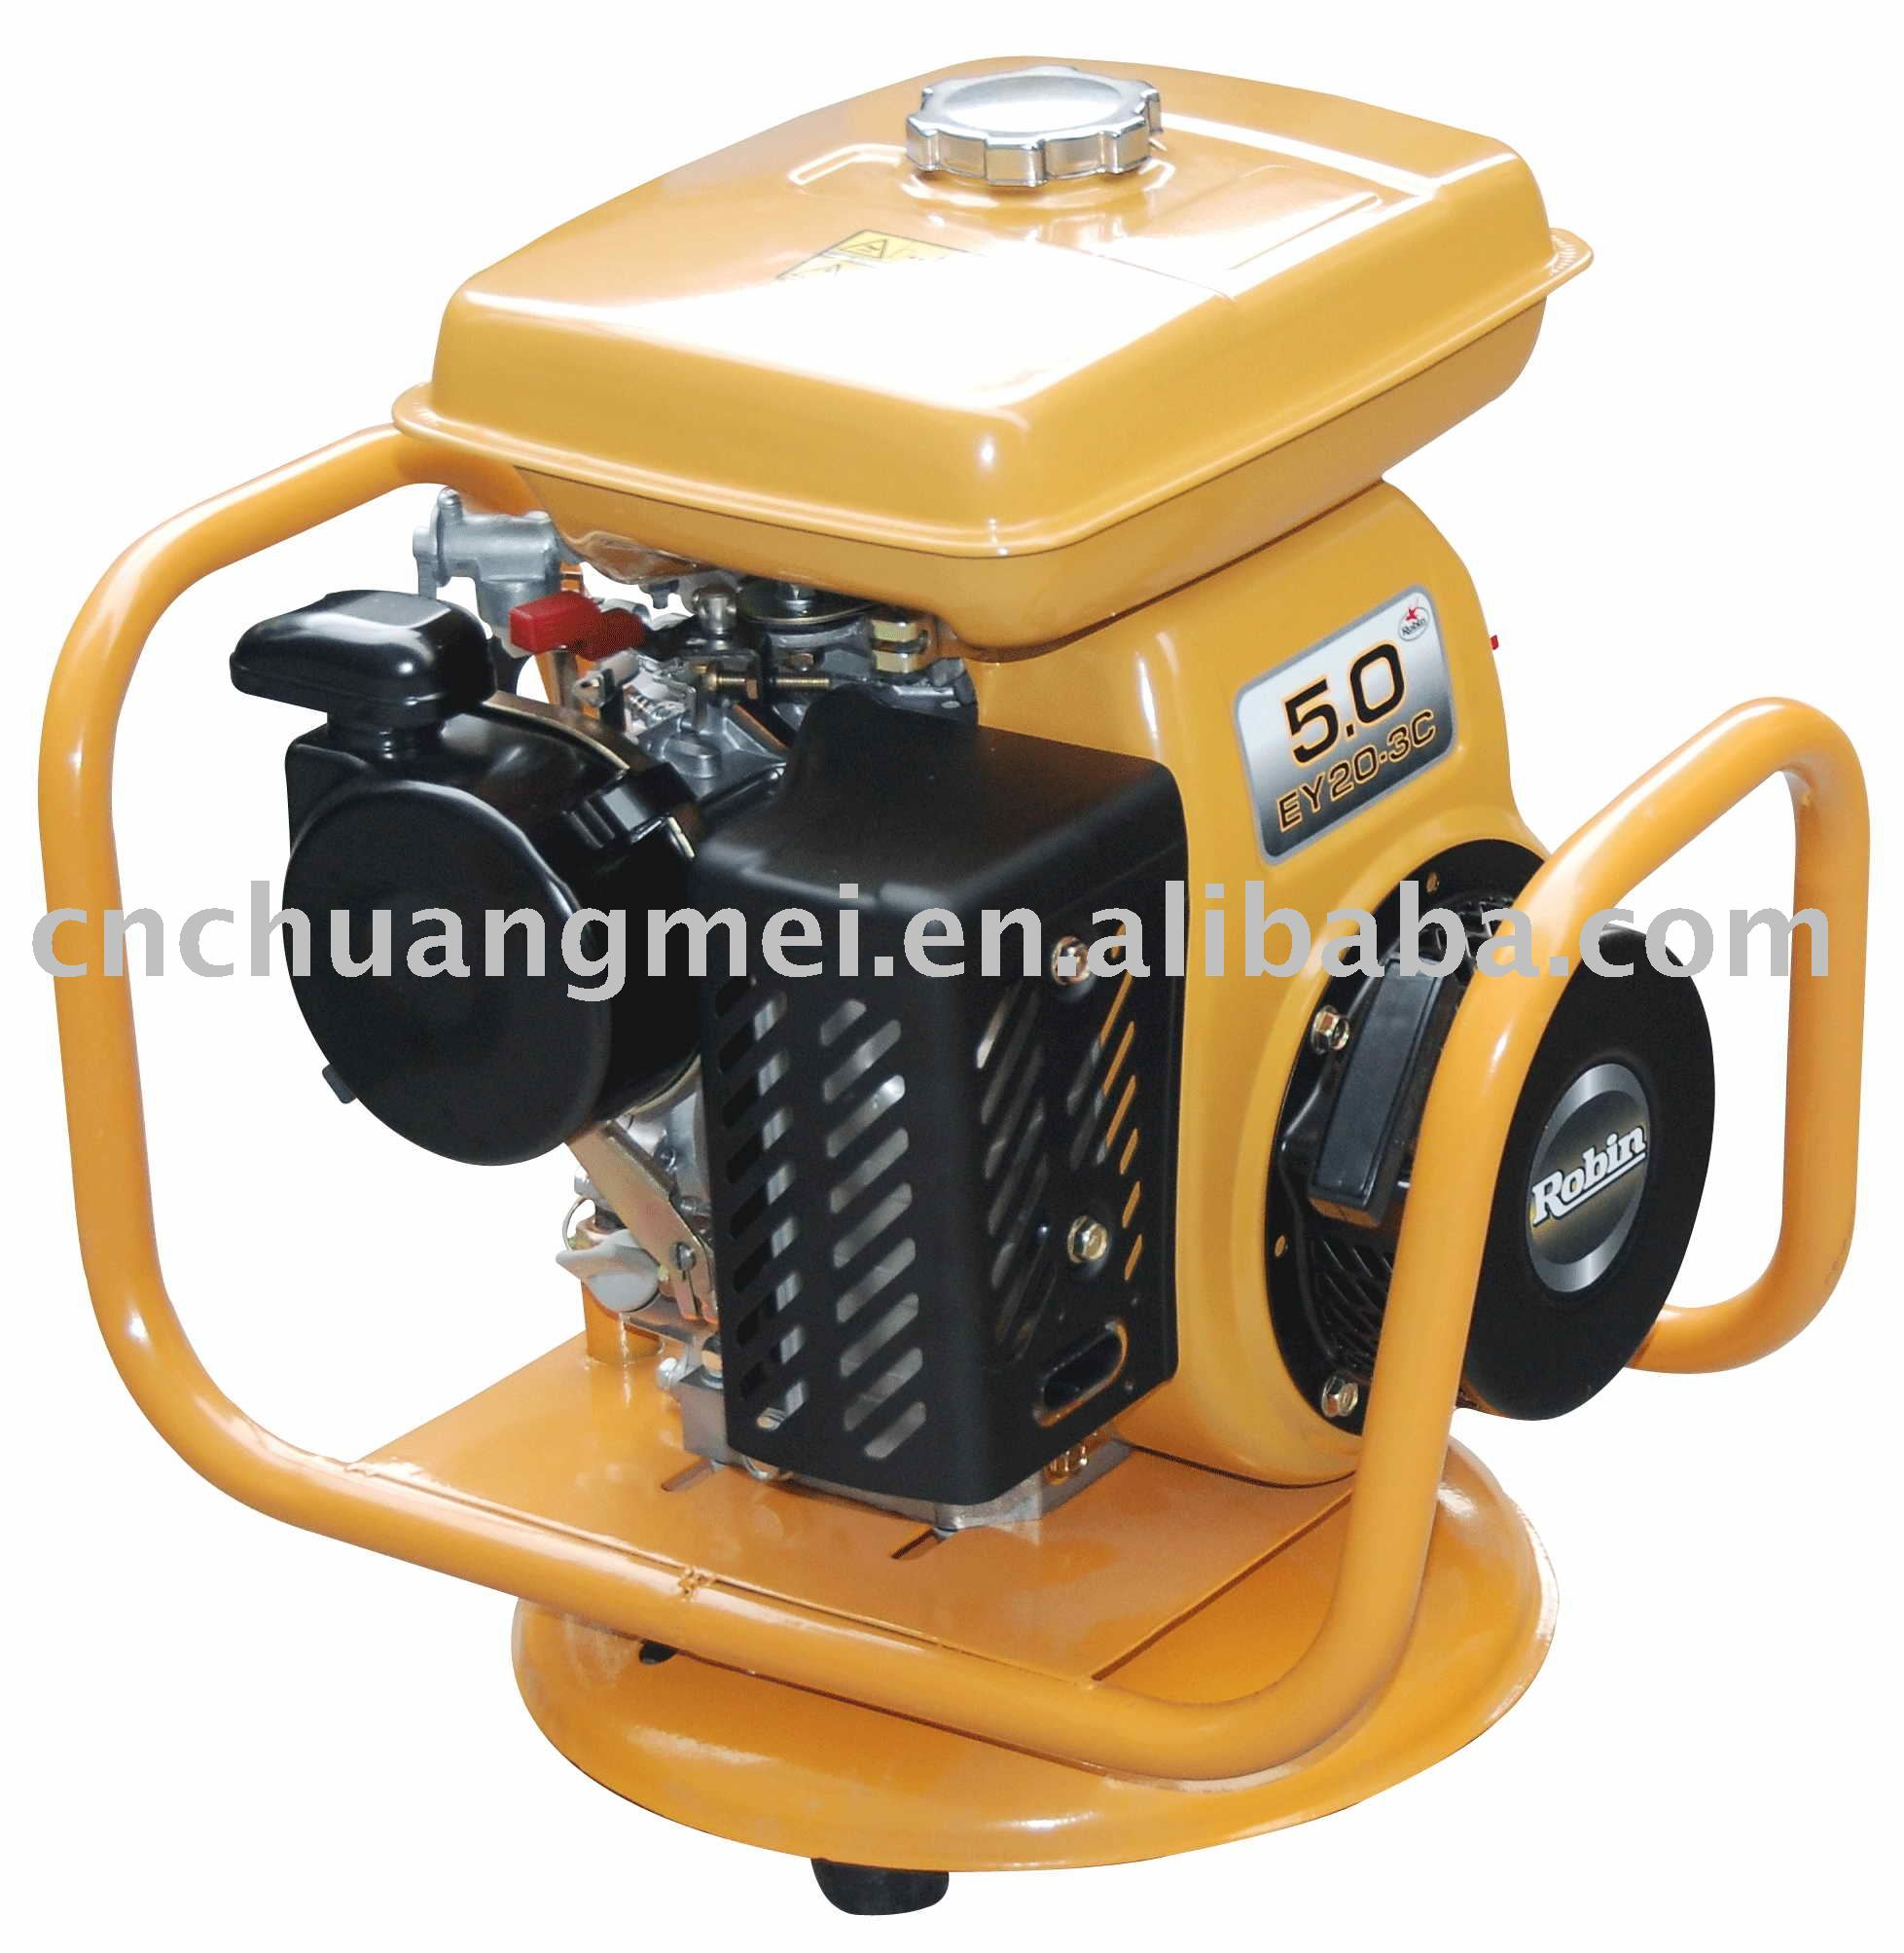 Vibrator Robin Gasoline Engine With Frame